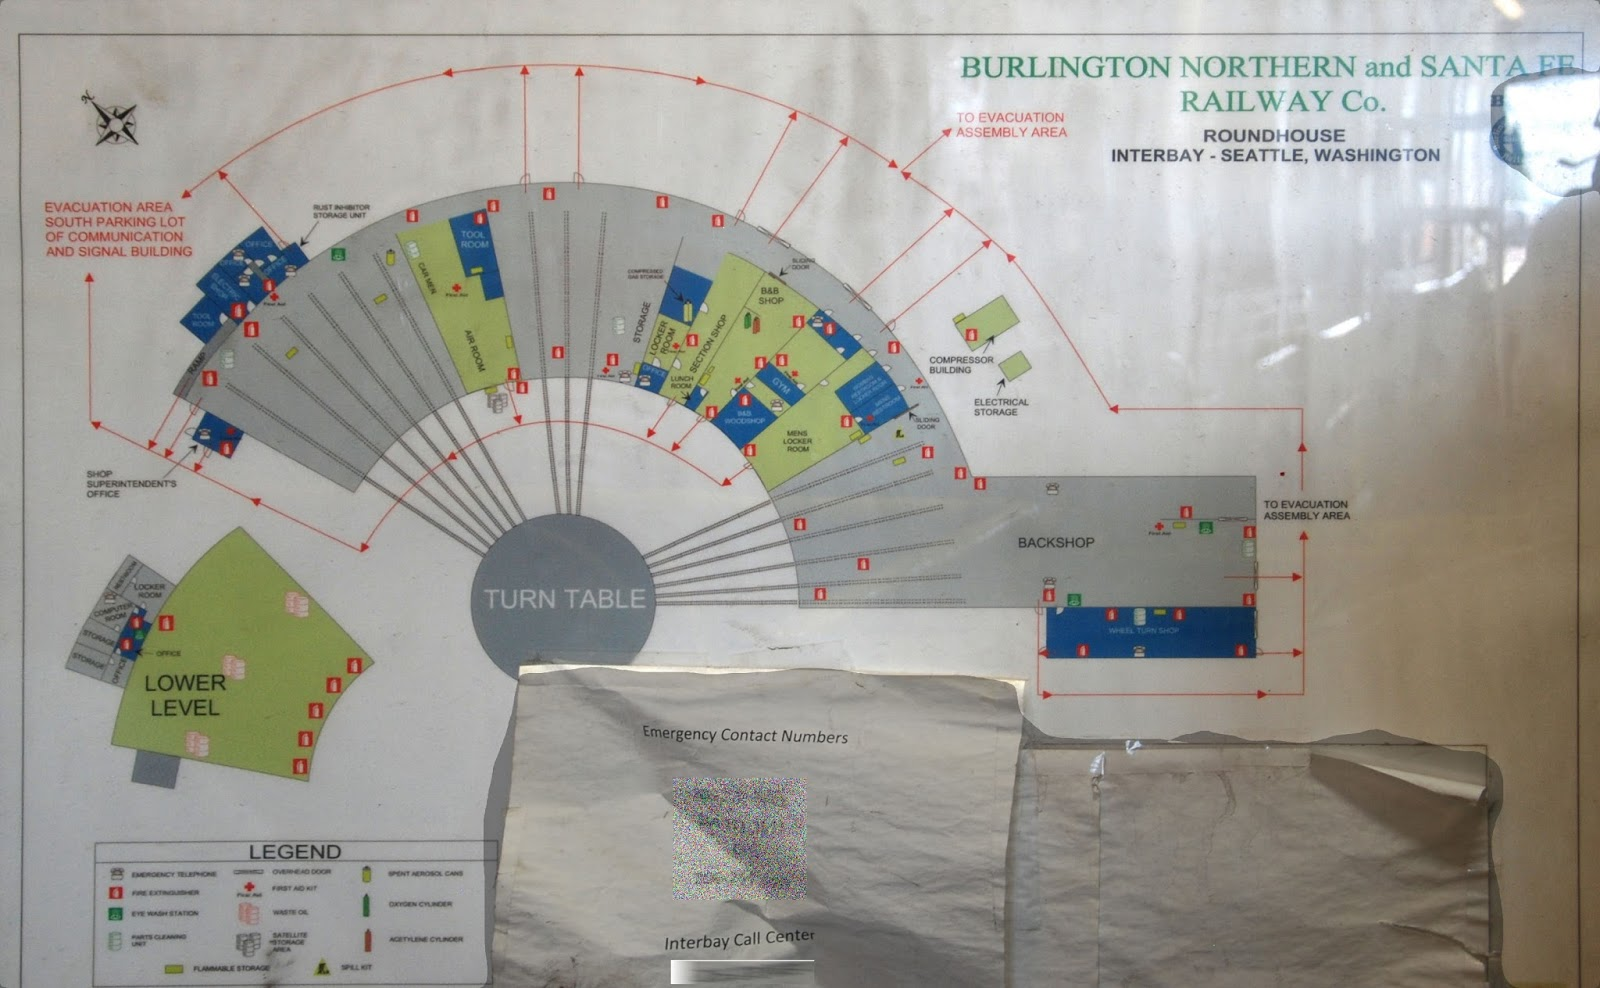 map of interbay roundhouse photo by andrew klamka